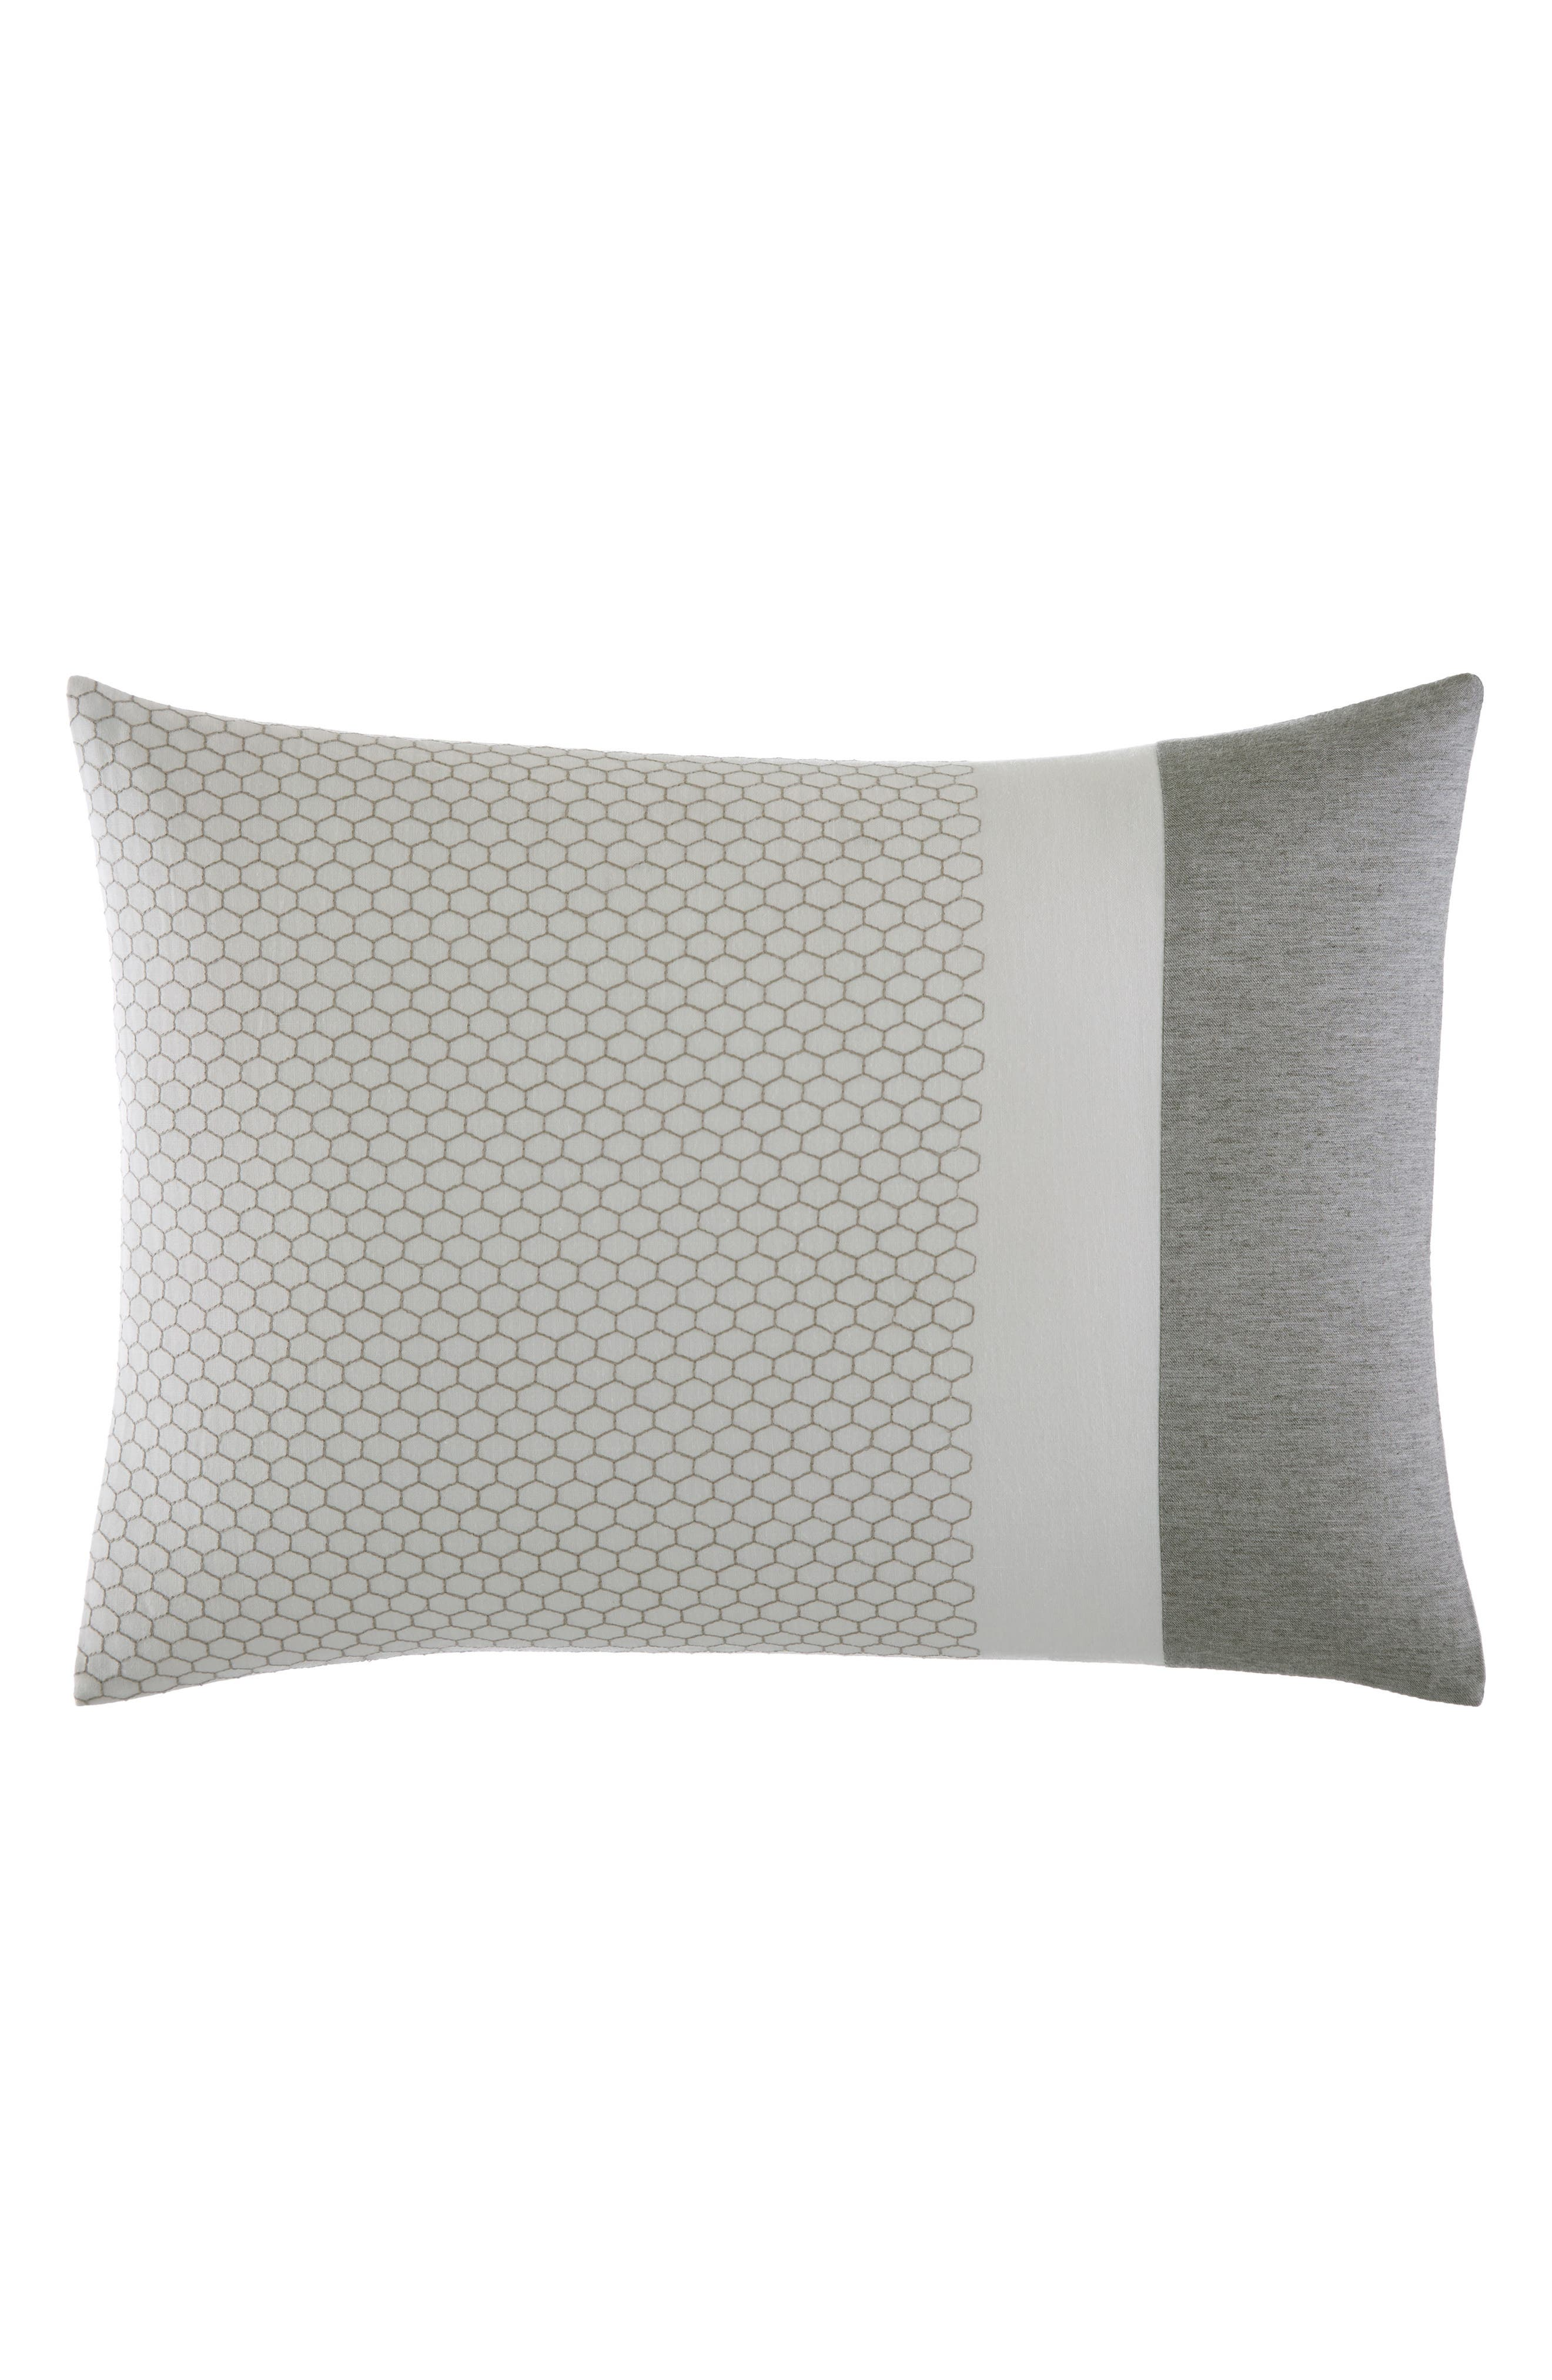 Tuille Floral Breakfast Pillow,                         Main,                         color, Medium Gray